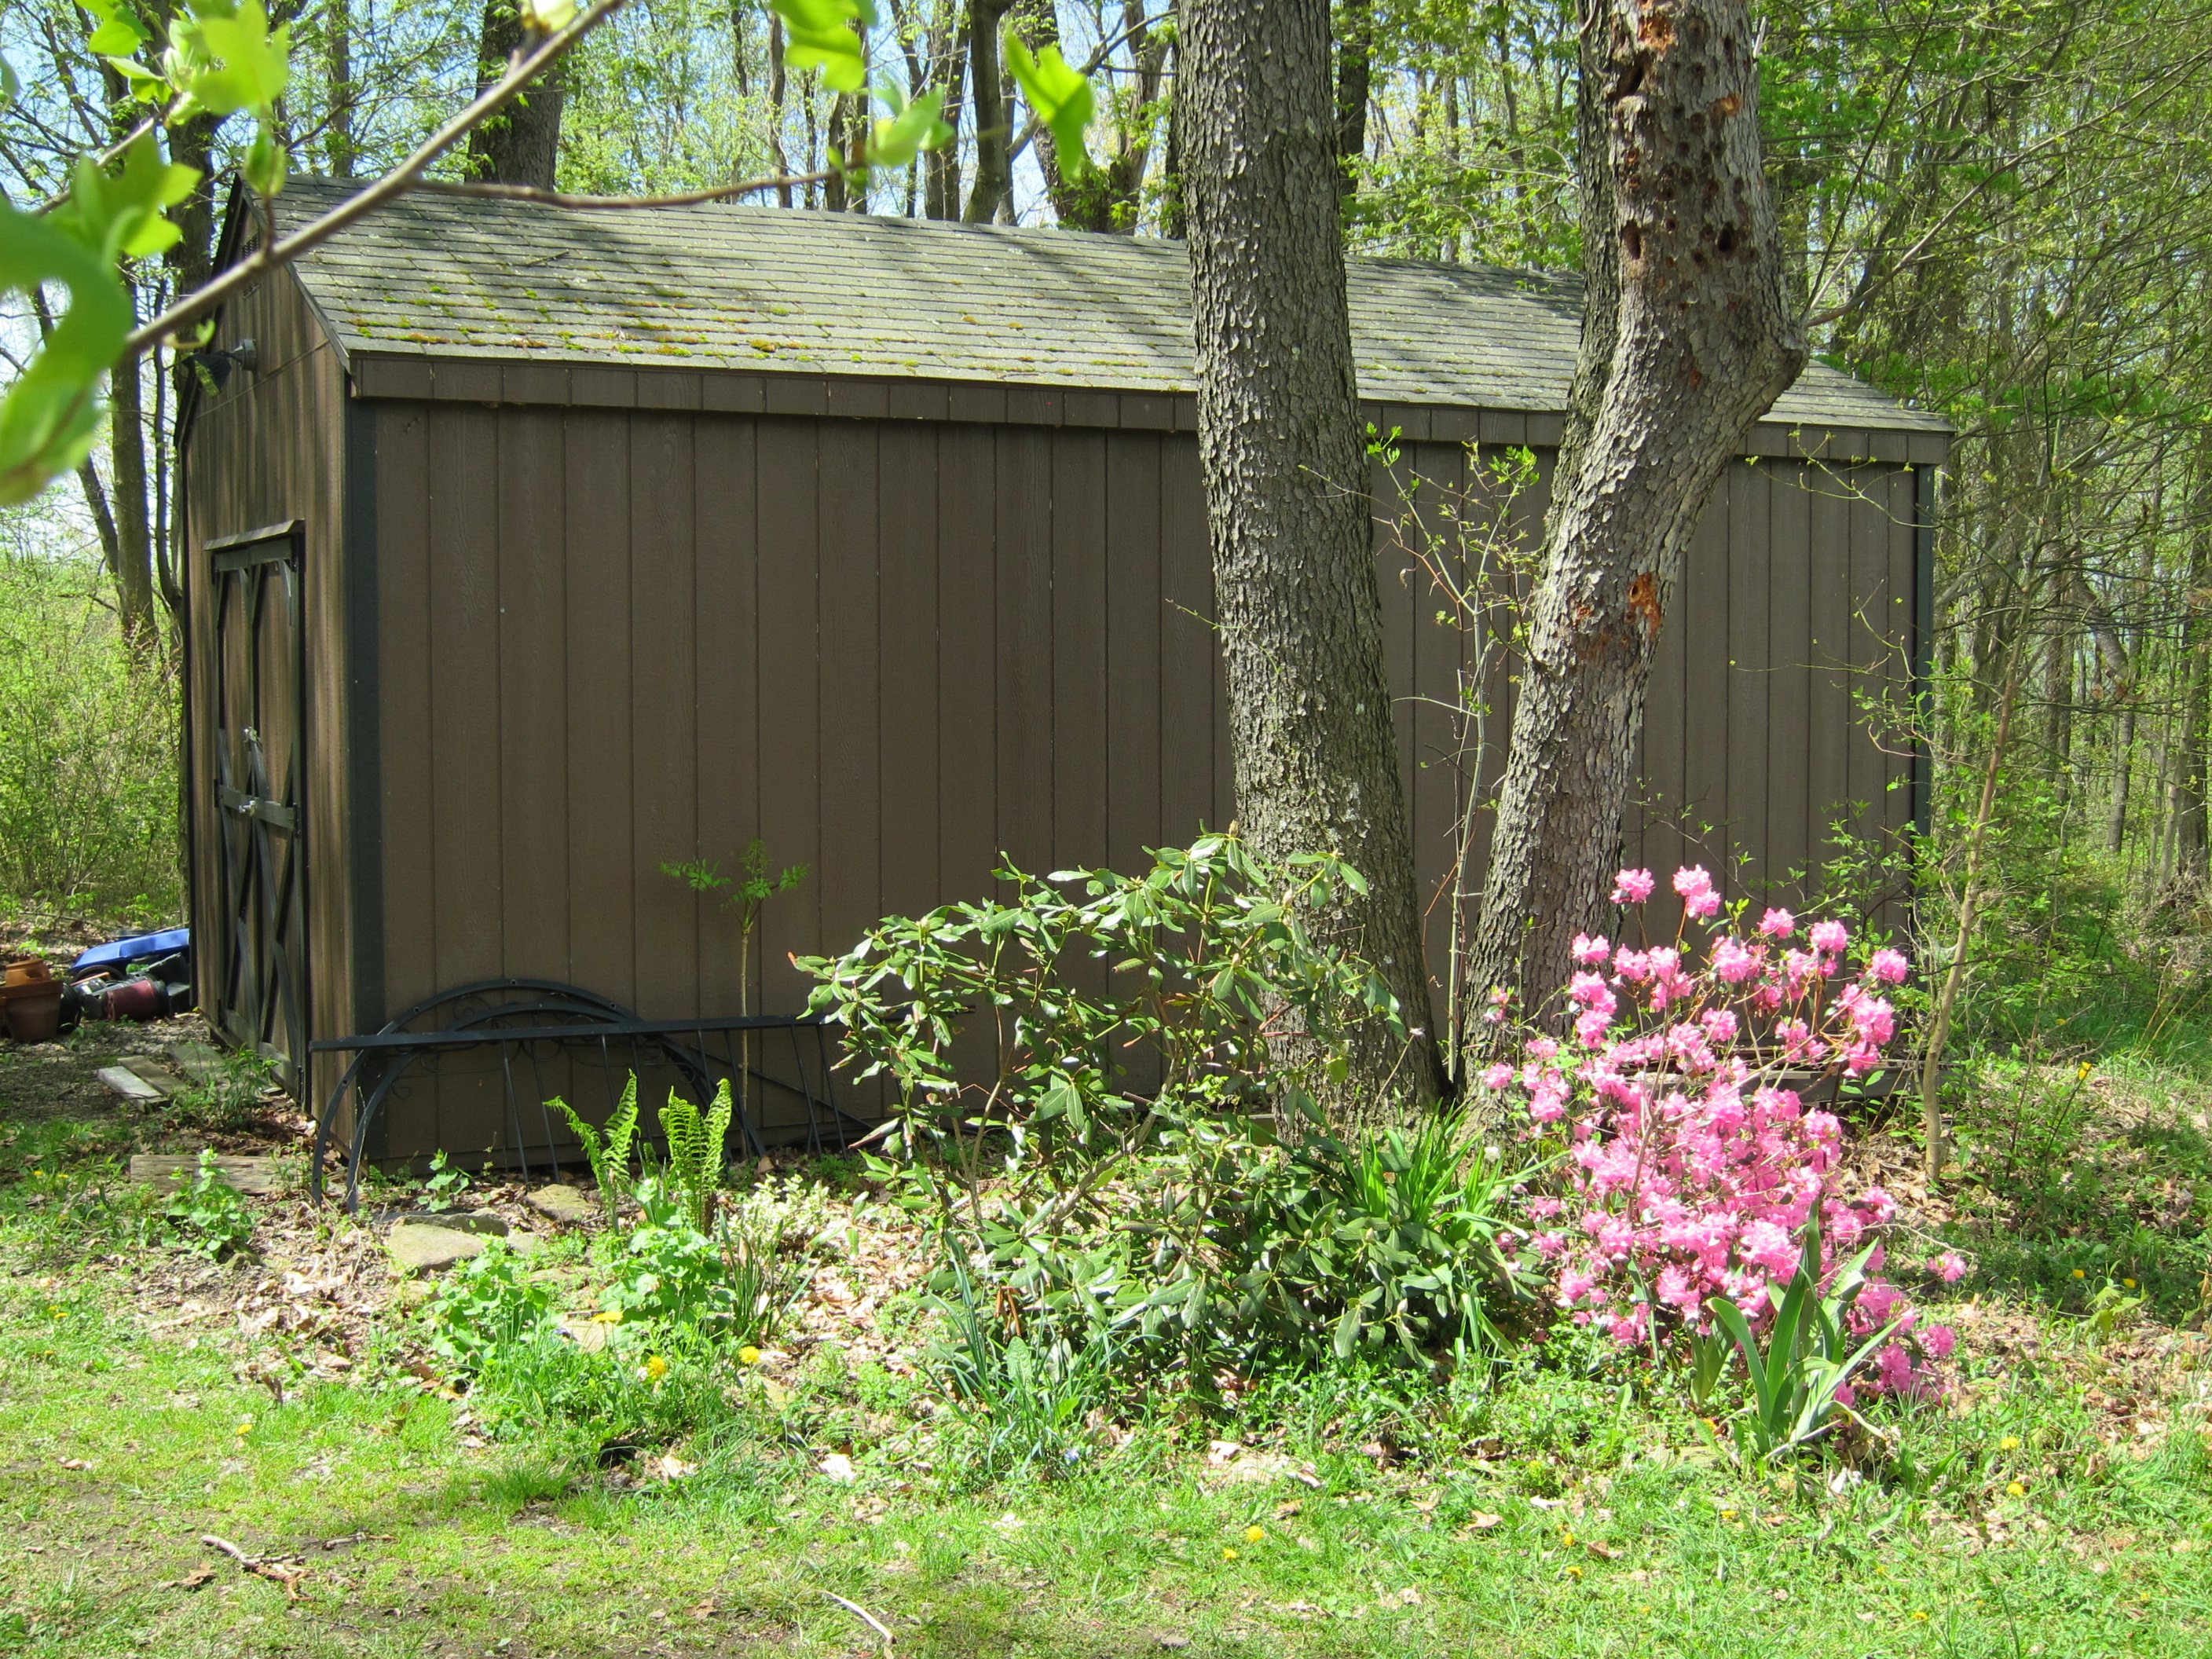 The Shed and Flowers